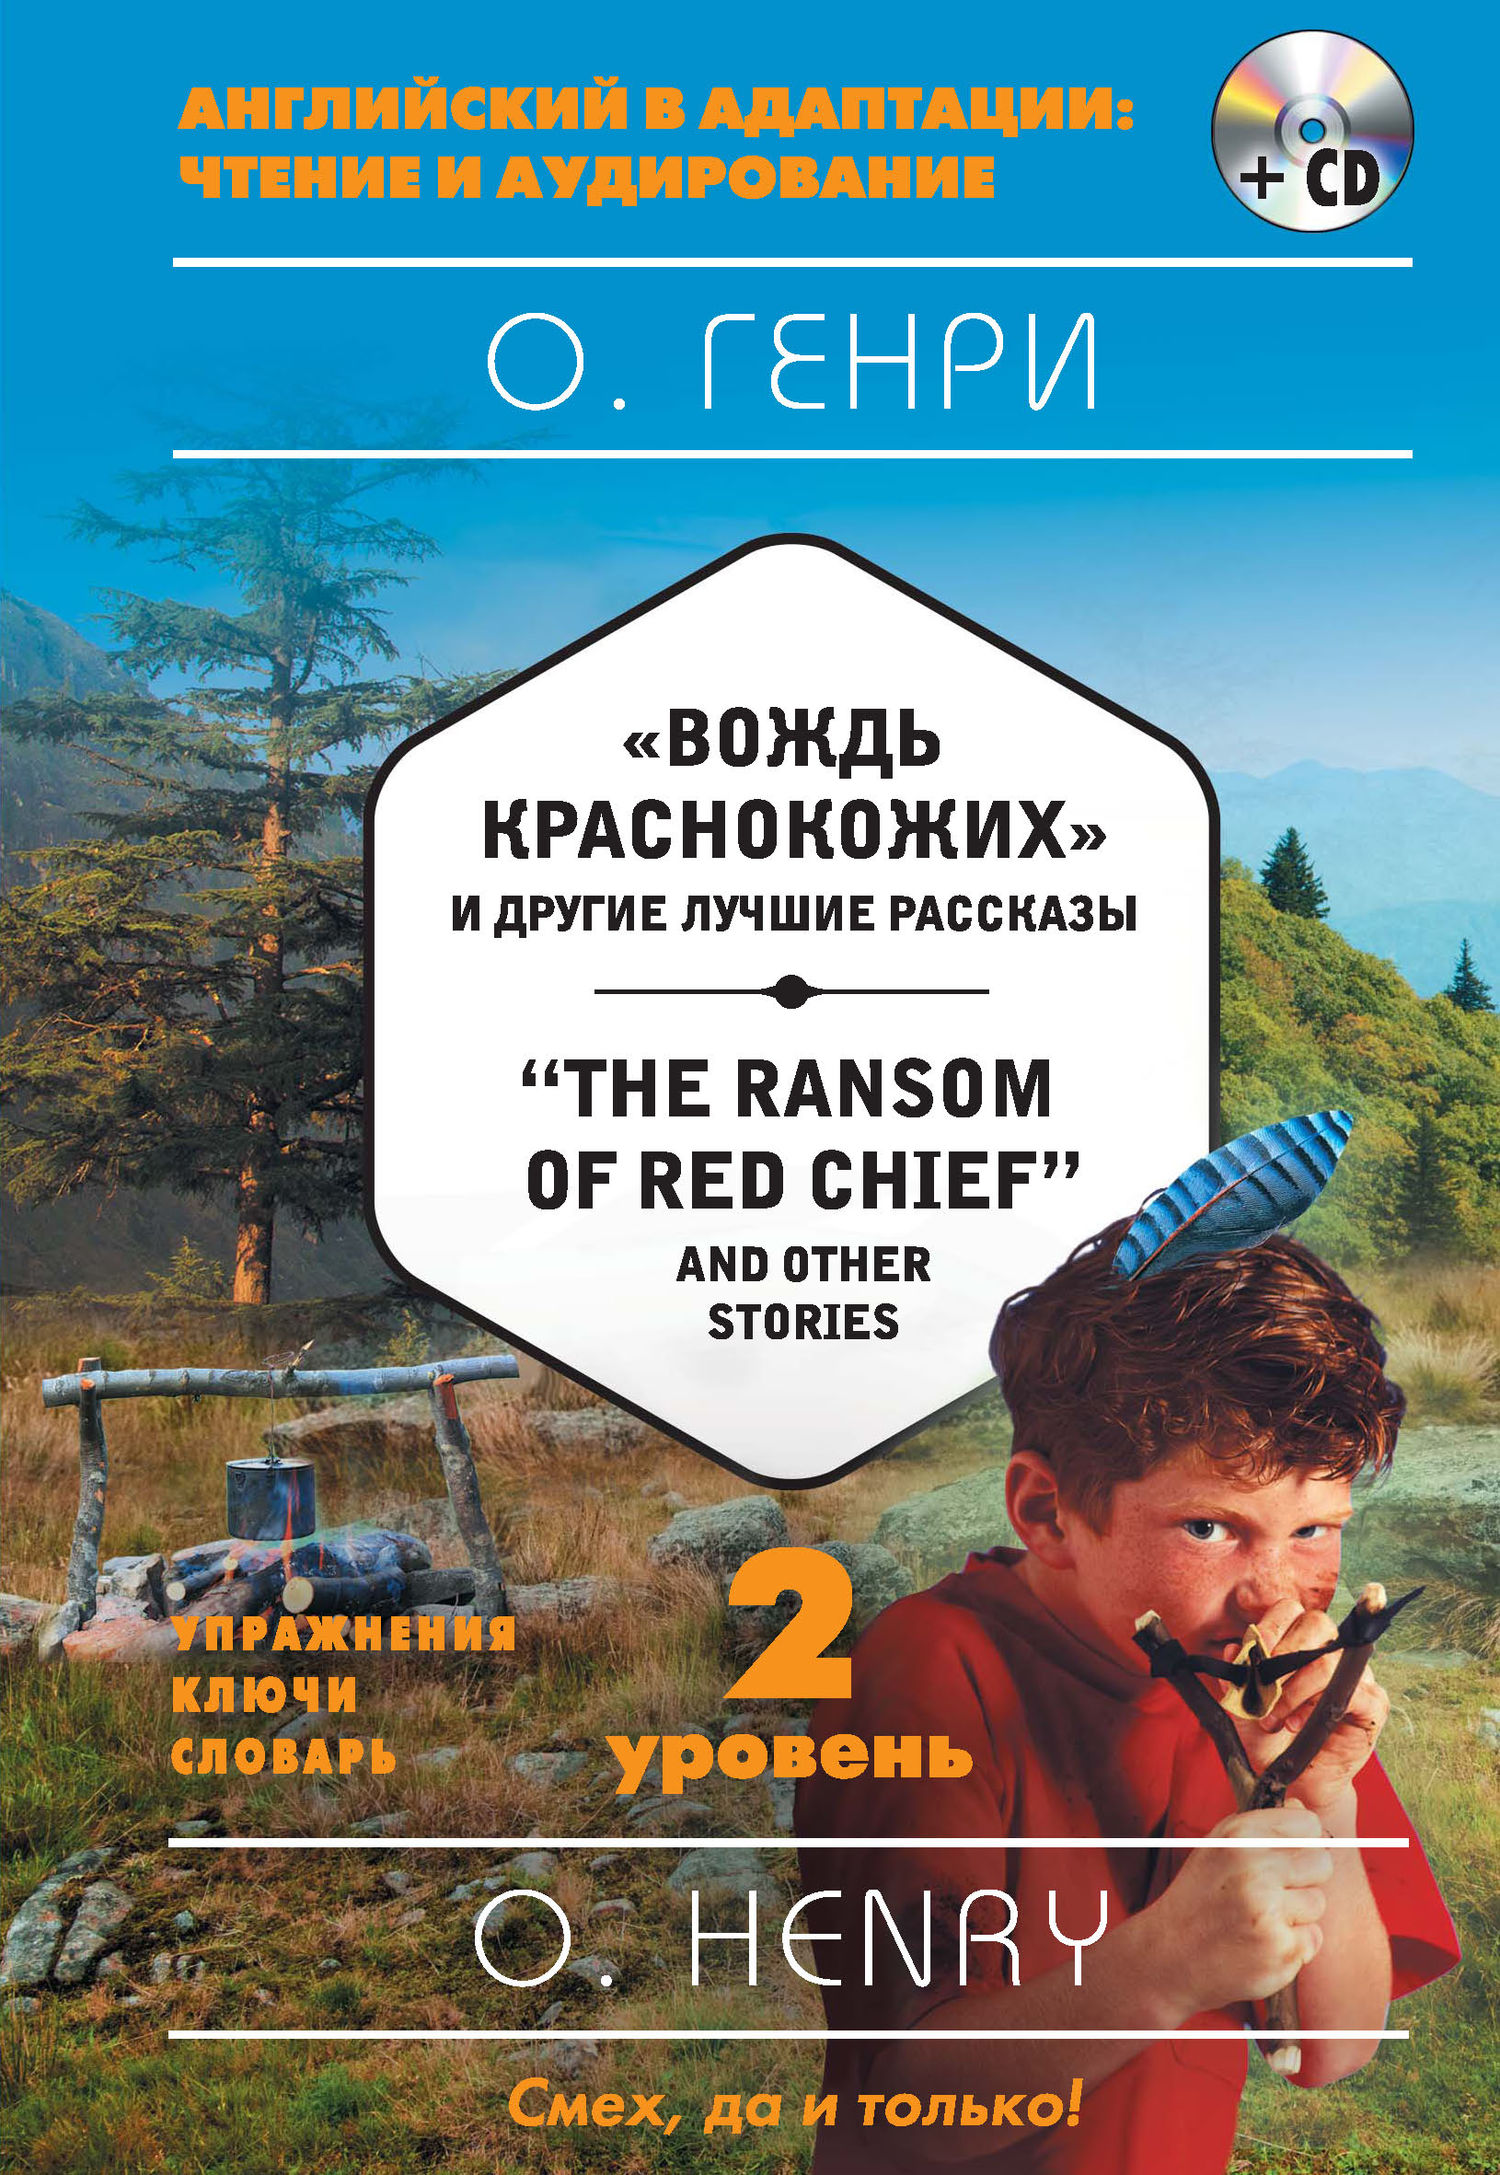 О. Генри «Вождь краснокожих» и другие лучшие рассказы / «The Ransom of Red Chief» and Other Stories. 2 уровень (+MP3) clarke s the ladies of grace adieu and other stories